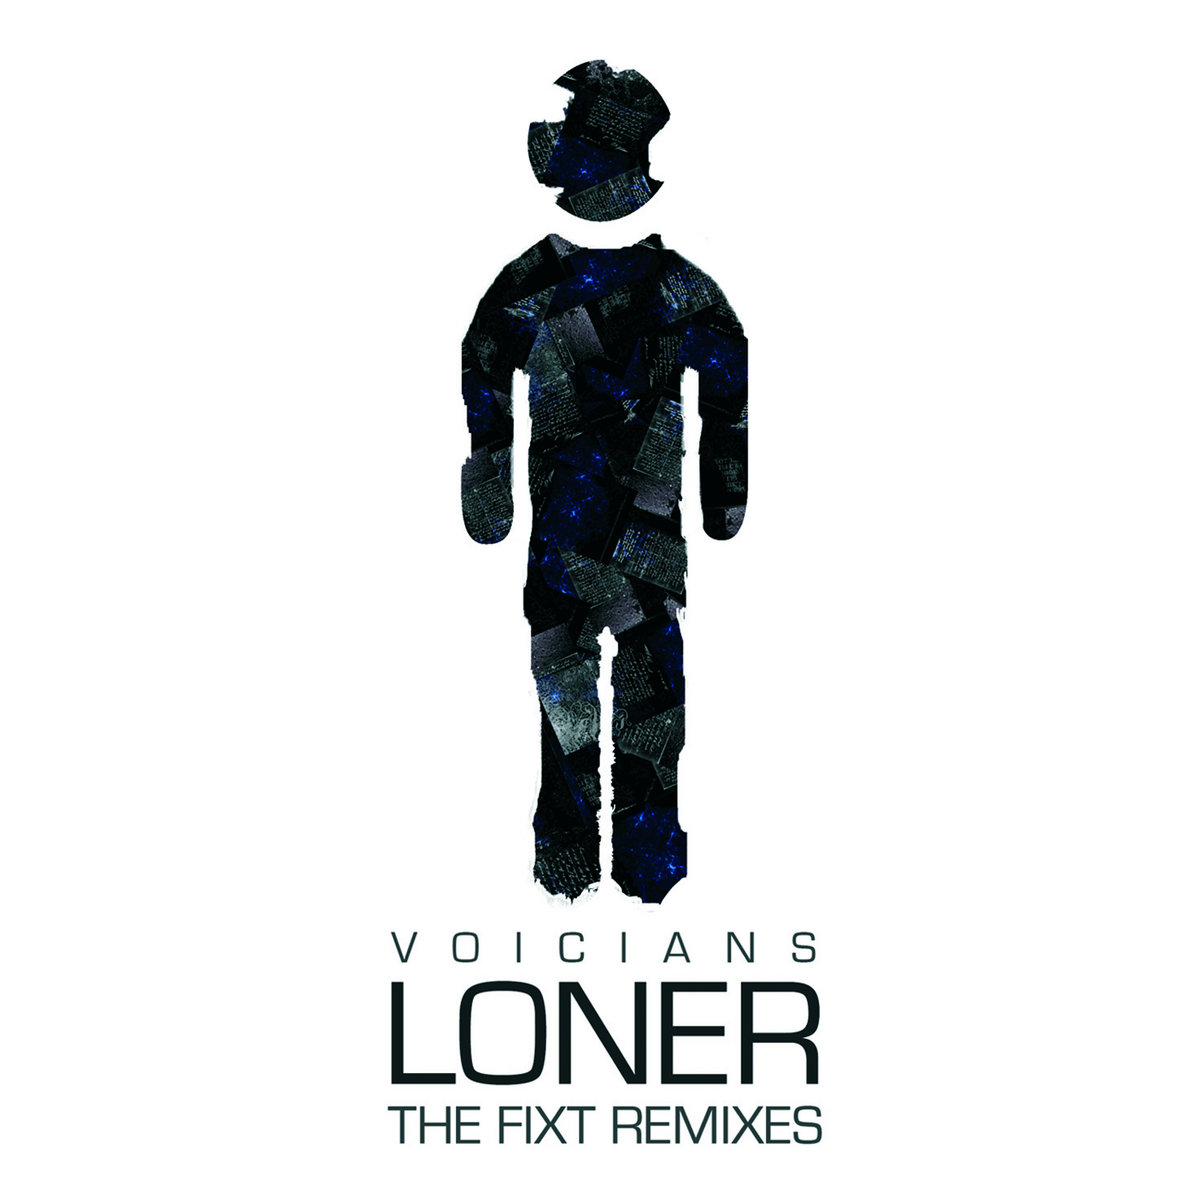 voicians loner mp3